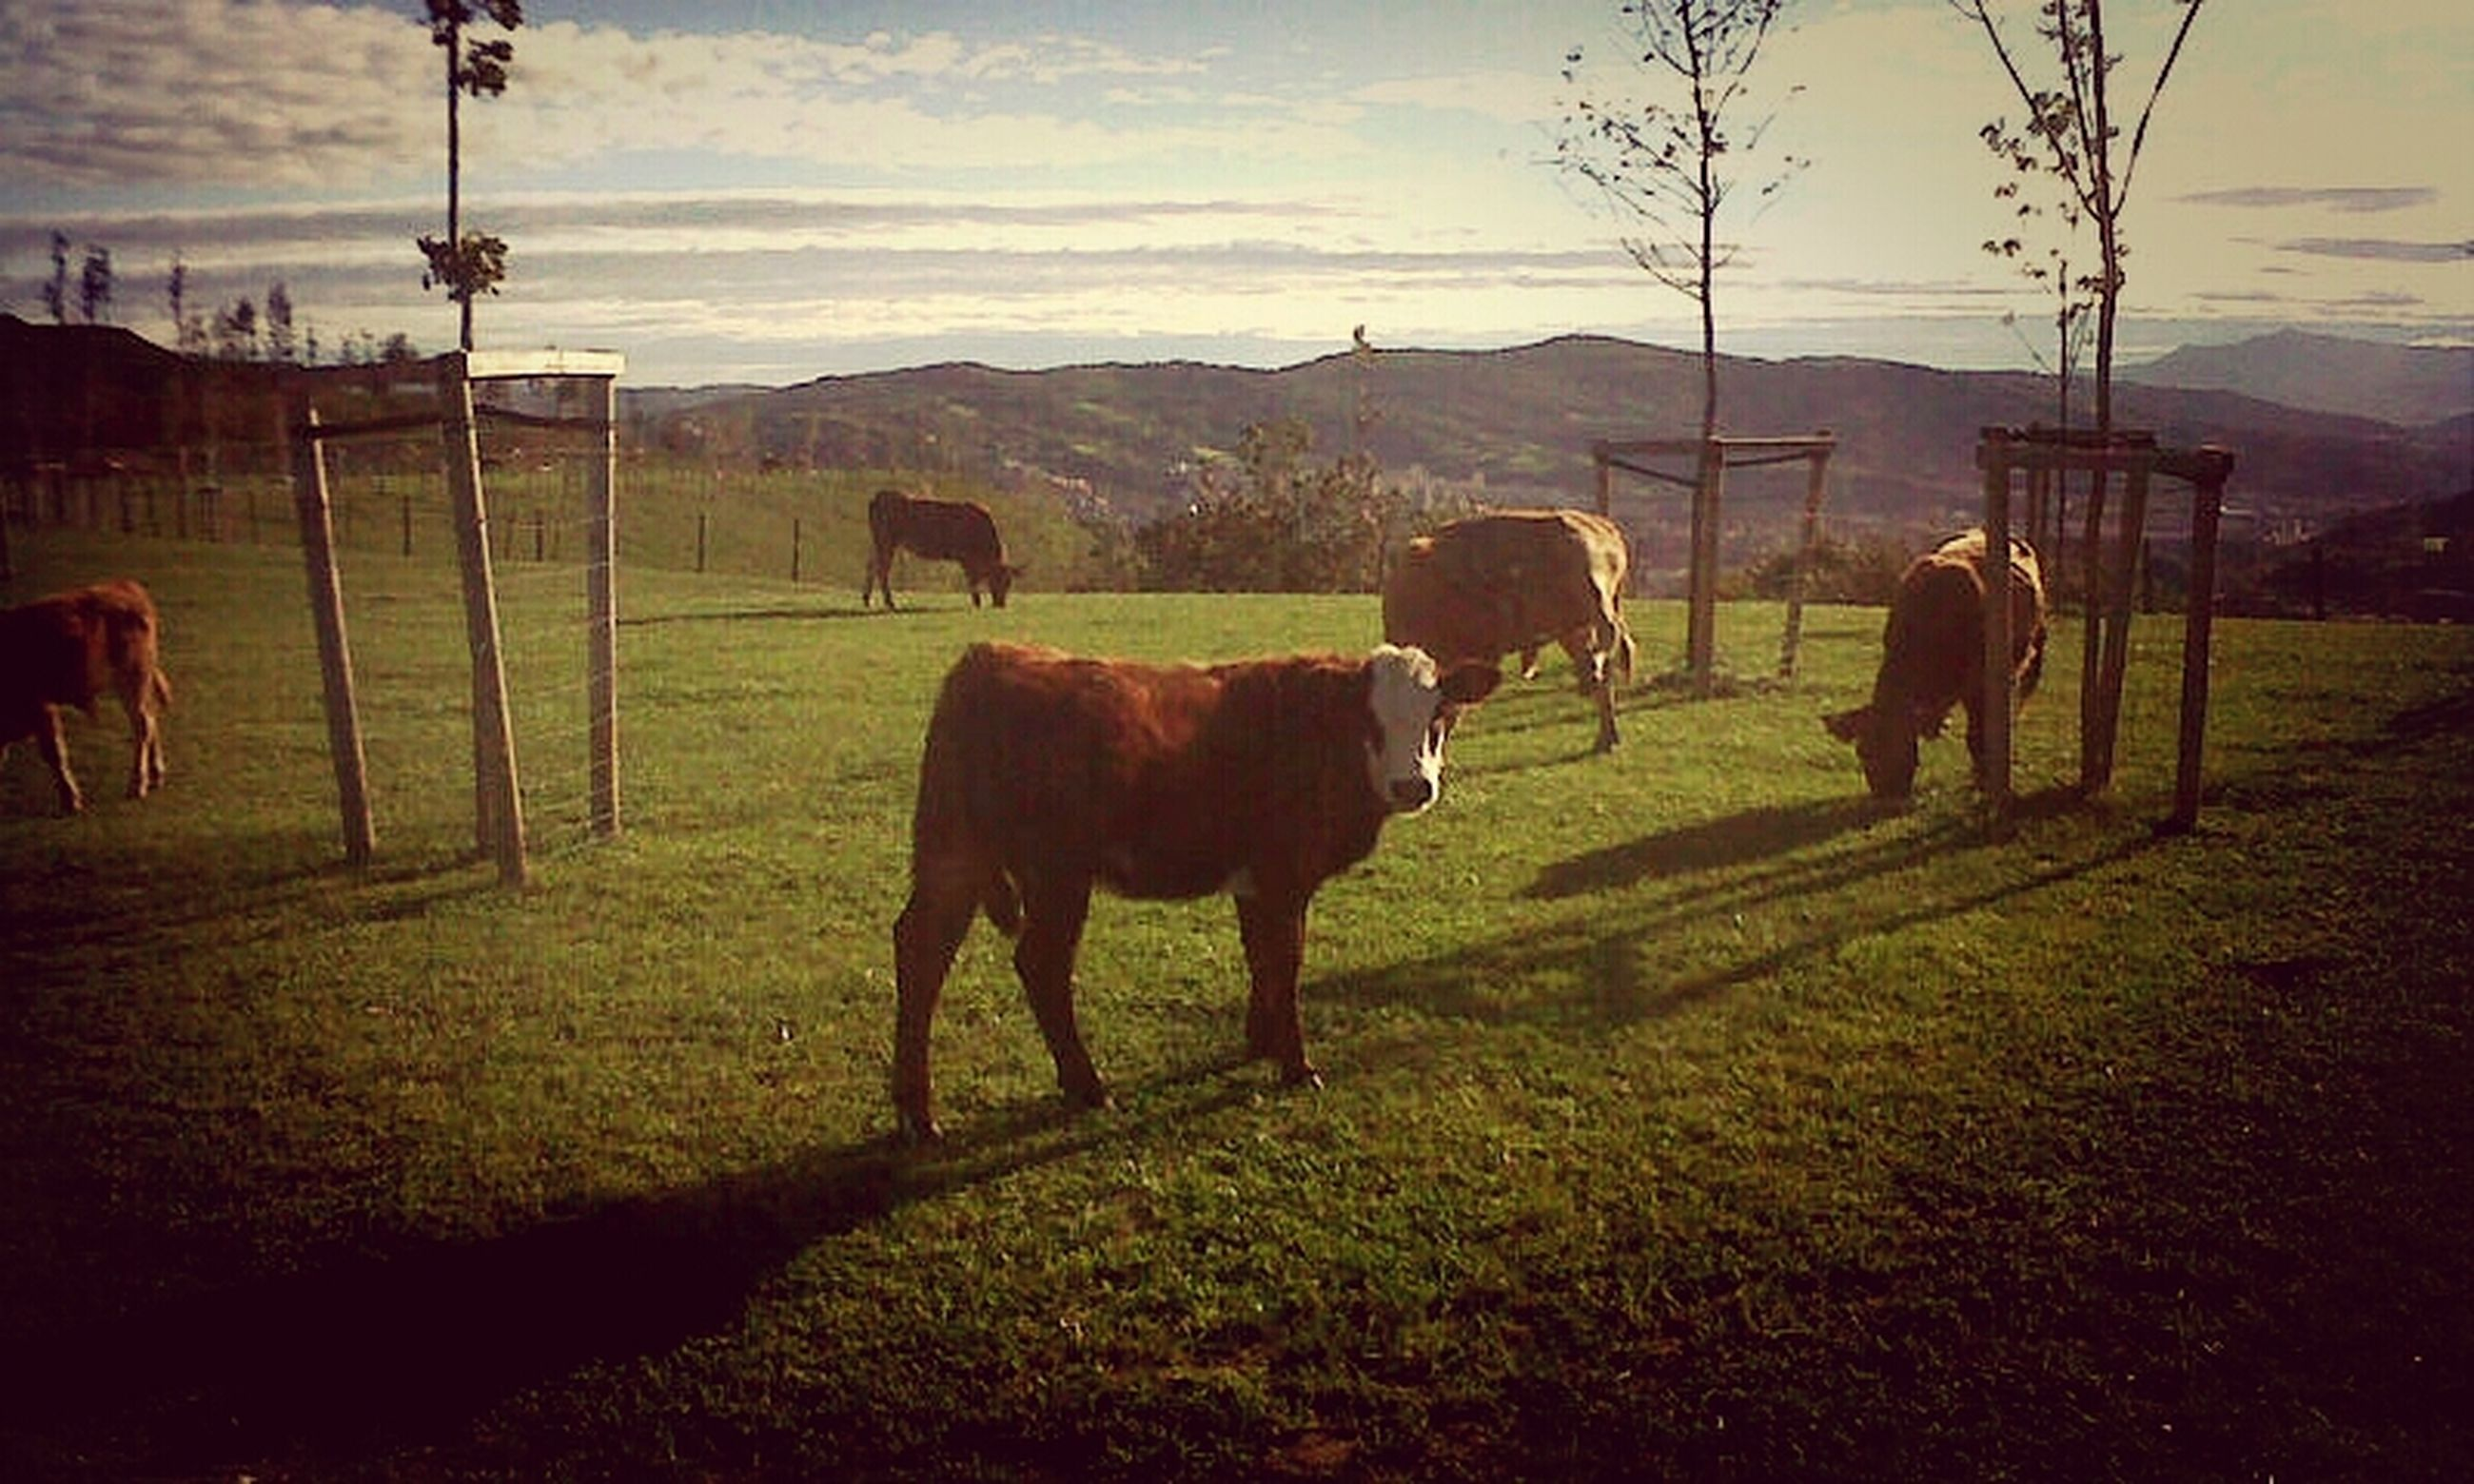 domestic animals, animal themes, livestock, horse, mammal, field, cow, grass, landscape, sky, grazing, domestic cattle, standing, working animal, herbivorous, fence, rural scene, cattle, full length, pasture